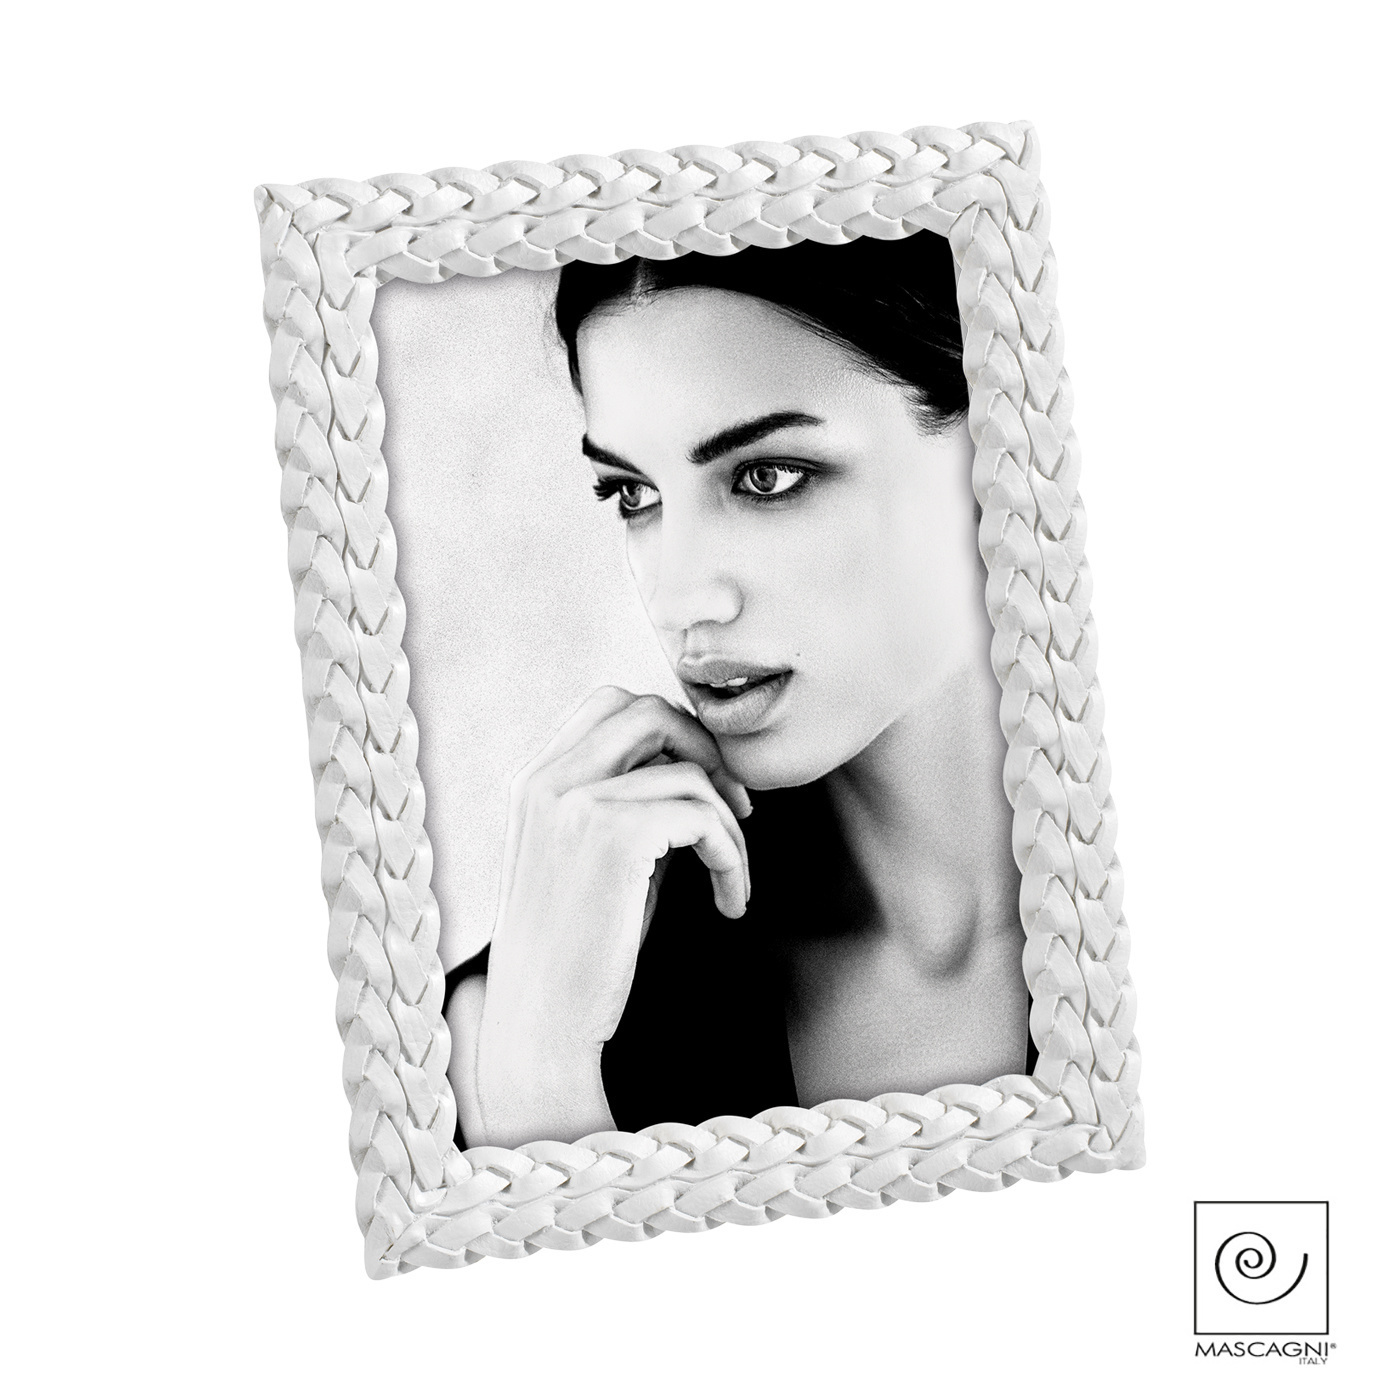 Art Mascagni A1051 PHOTO FRAME 10X15 - COL.WHITE